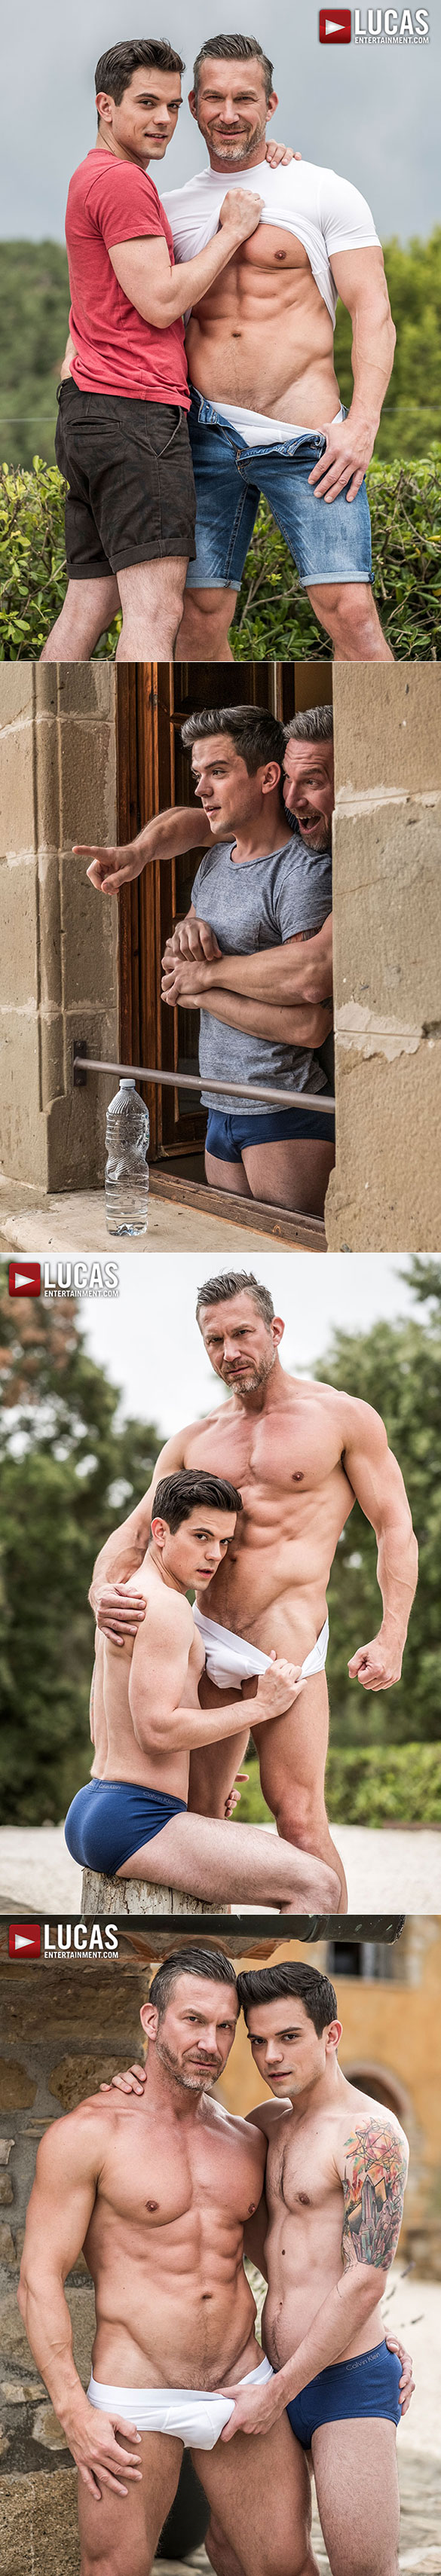 """Lucas Entertainment: Muscle daddy Tomas Brand fucks Dakota Payne raw in """"Must Seed TV: Fill More Guys"""""""